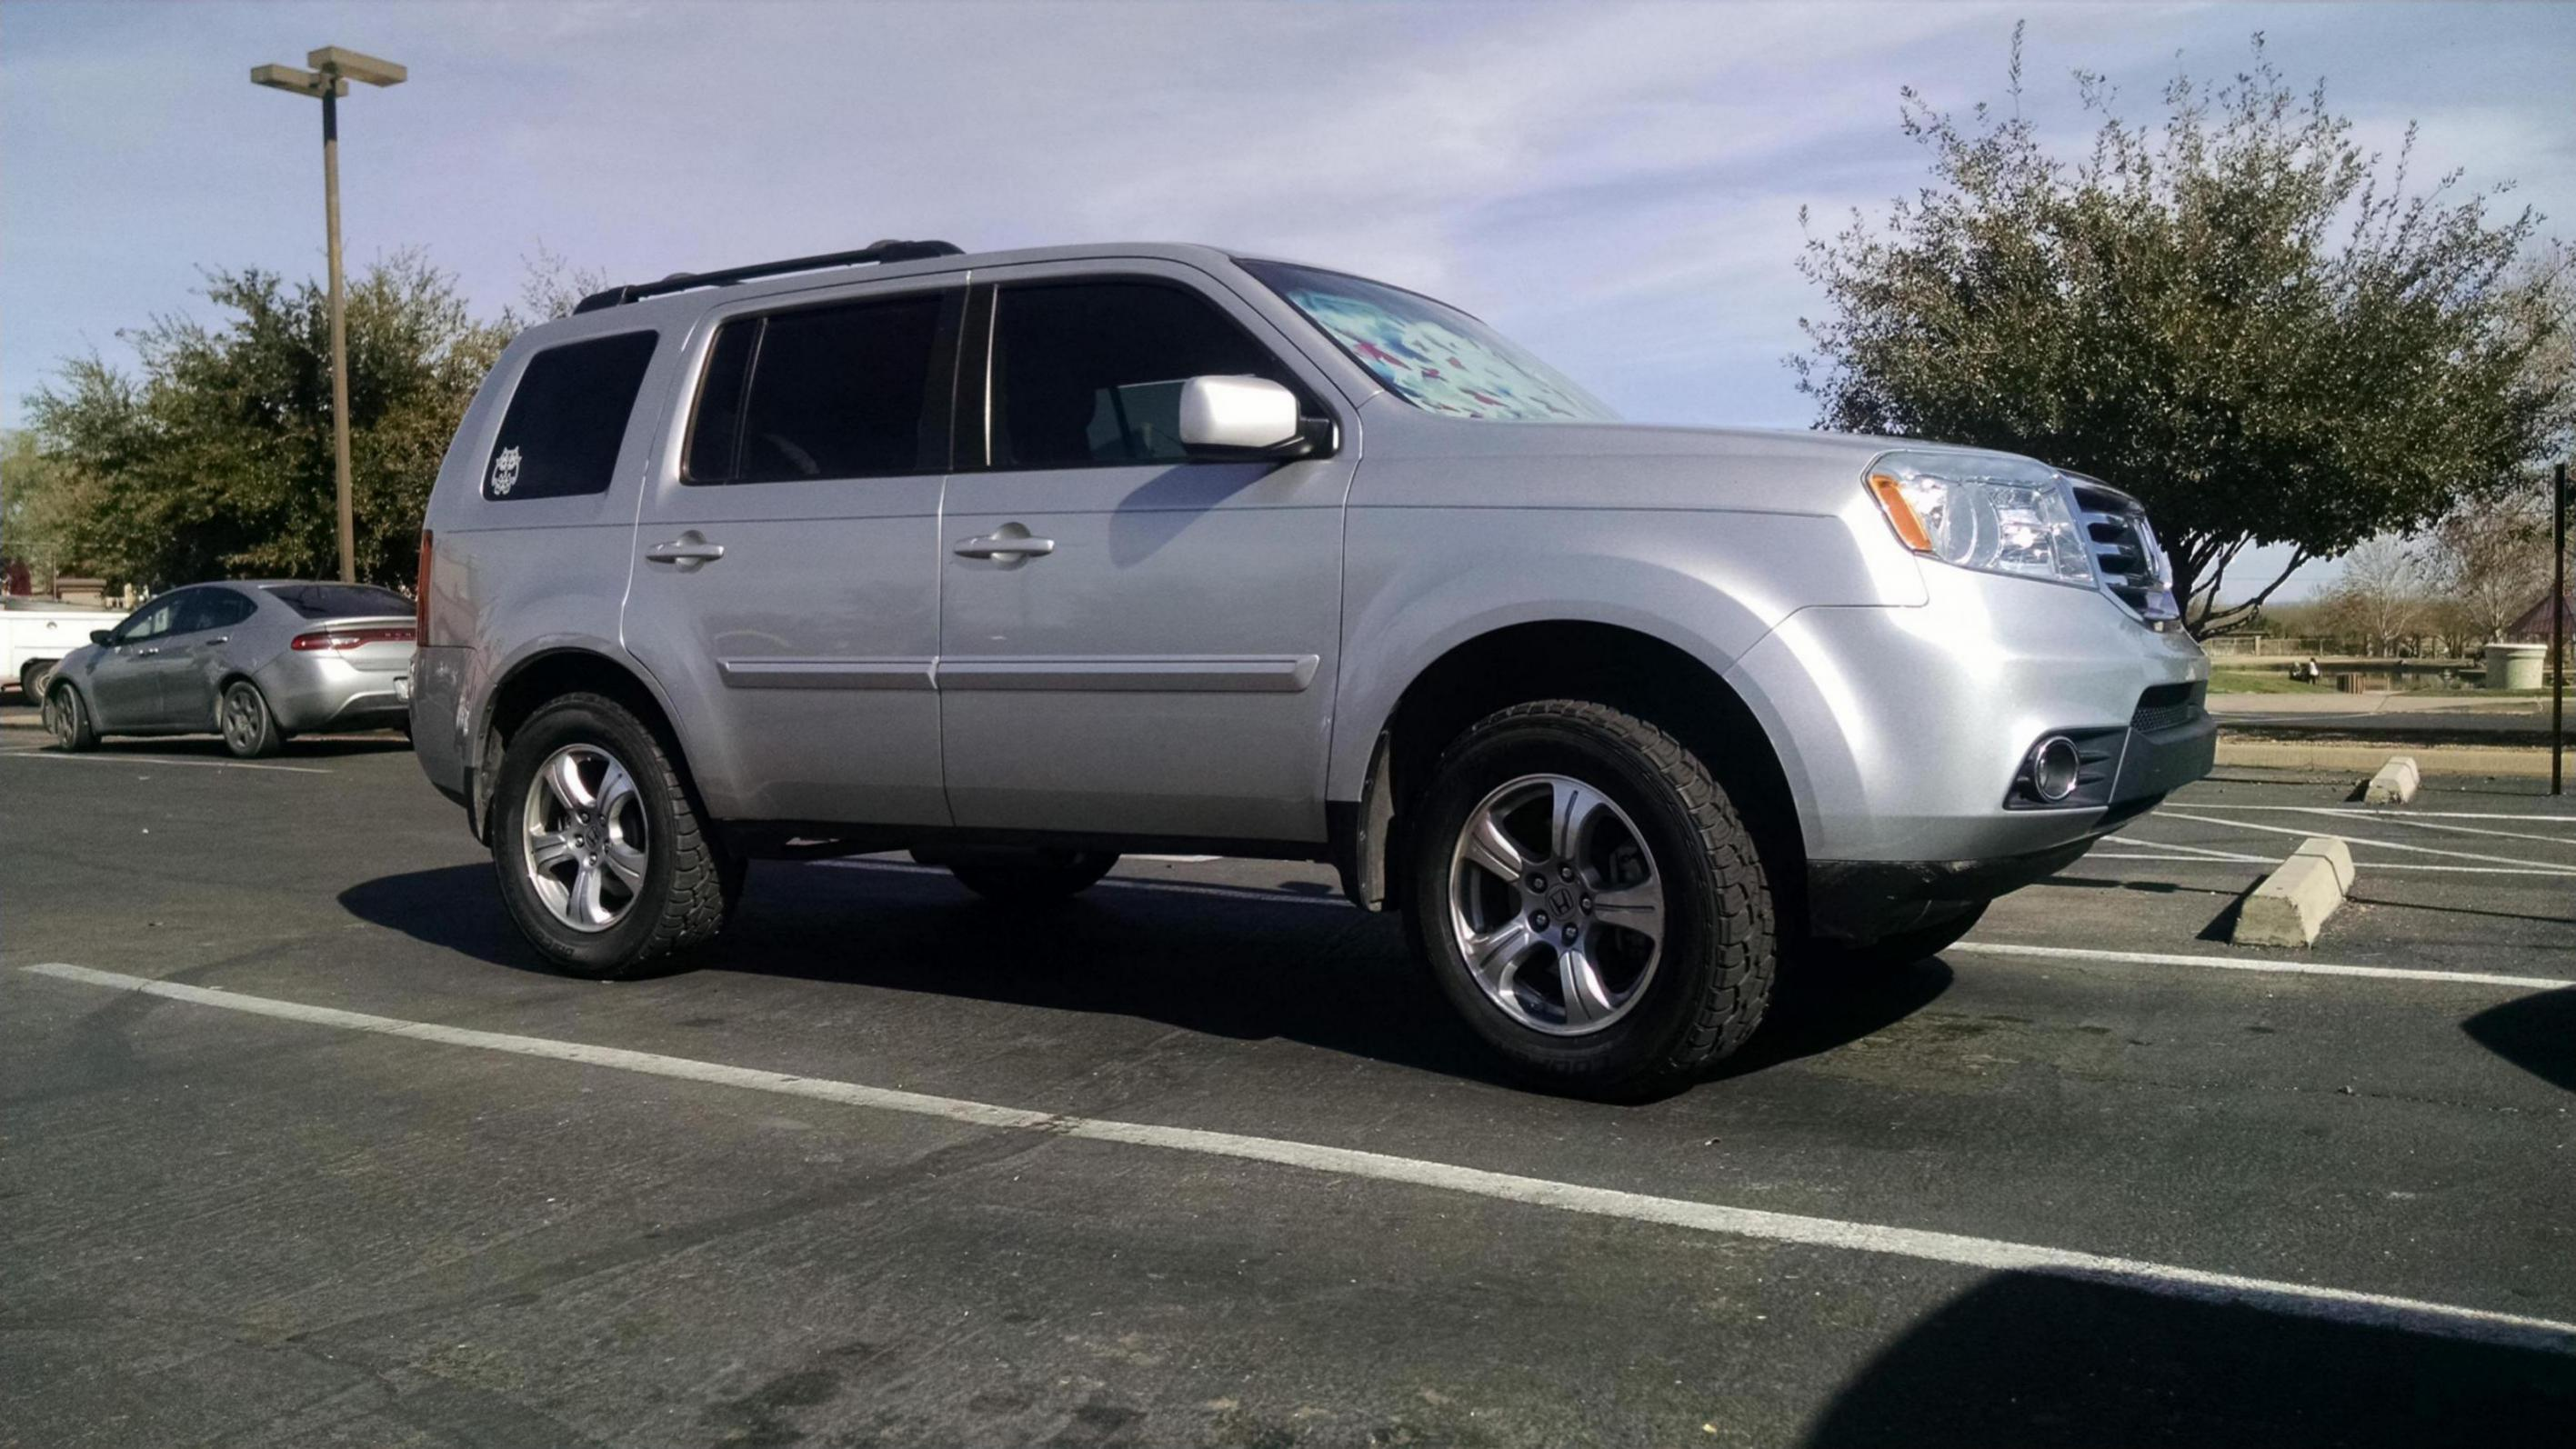 2013 Pilot 4wd Lift kit - Page 2 - Honda Pilot - Honda Pilot Forums